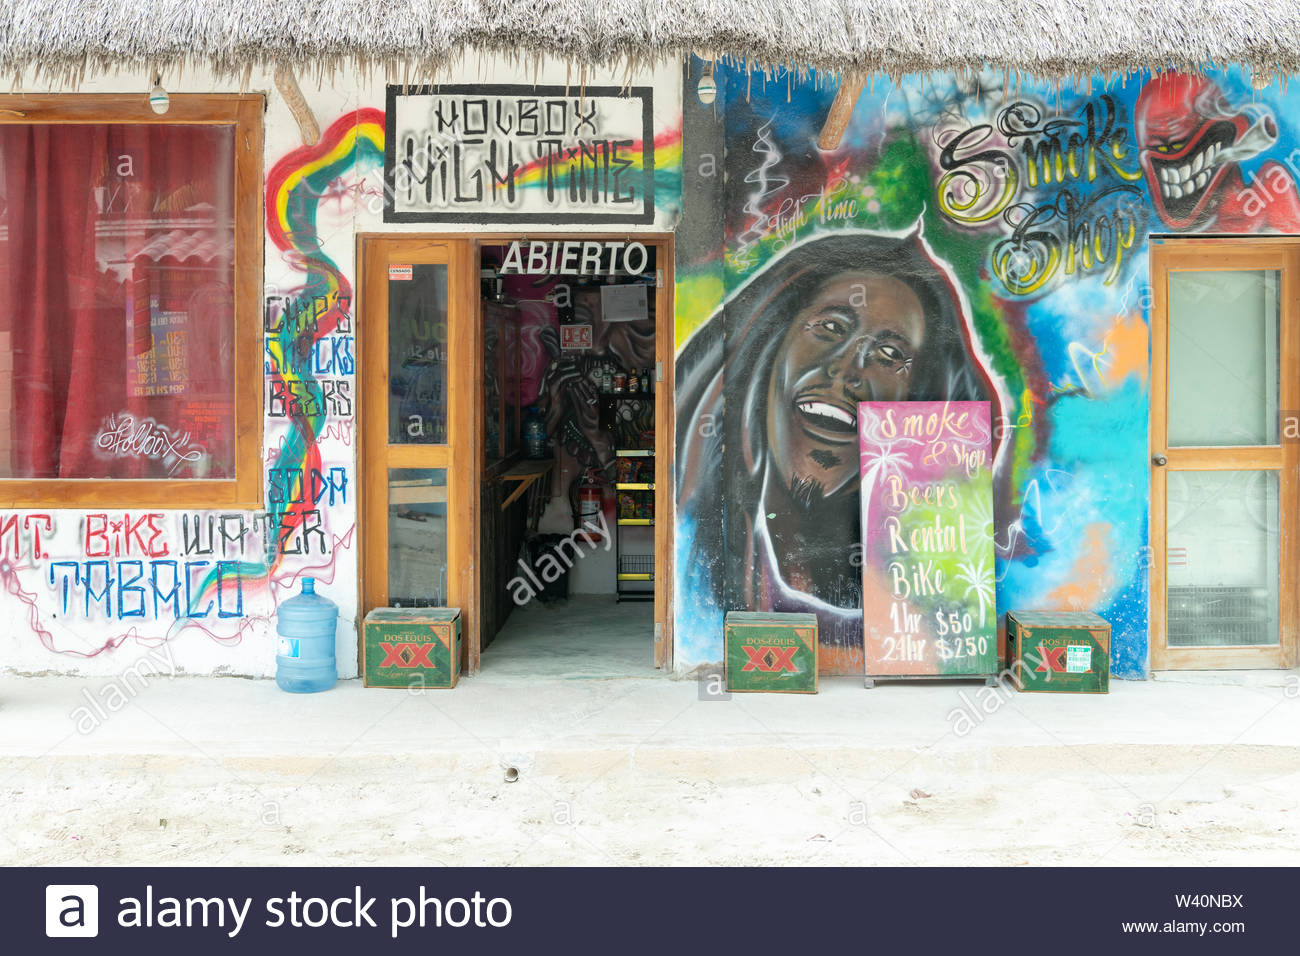 A shop in Isla Holbox, Mexico called High Time which rents bicycles and sells beer, water, tobacco, chips and snacks. - Stock Image